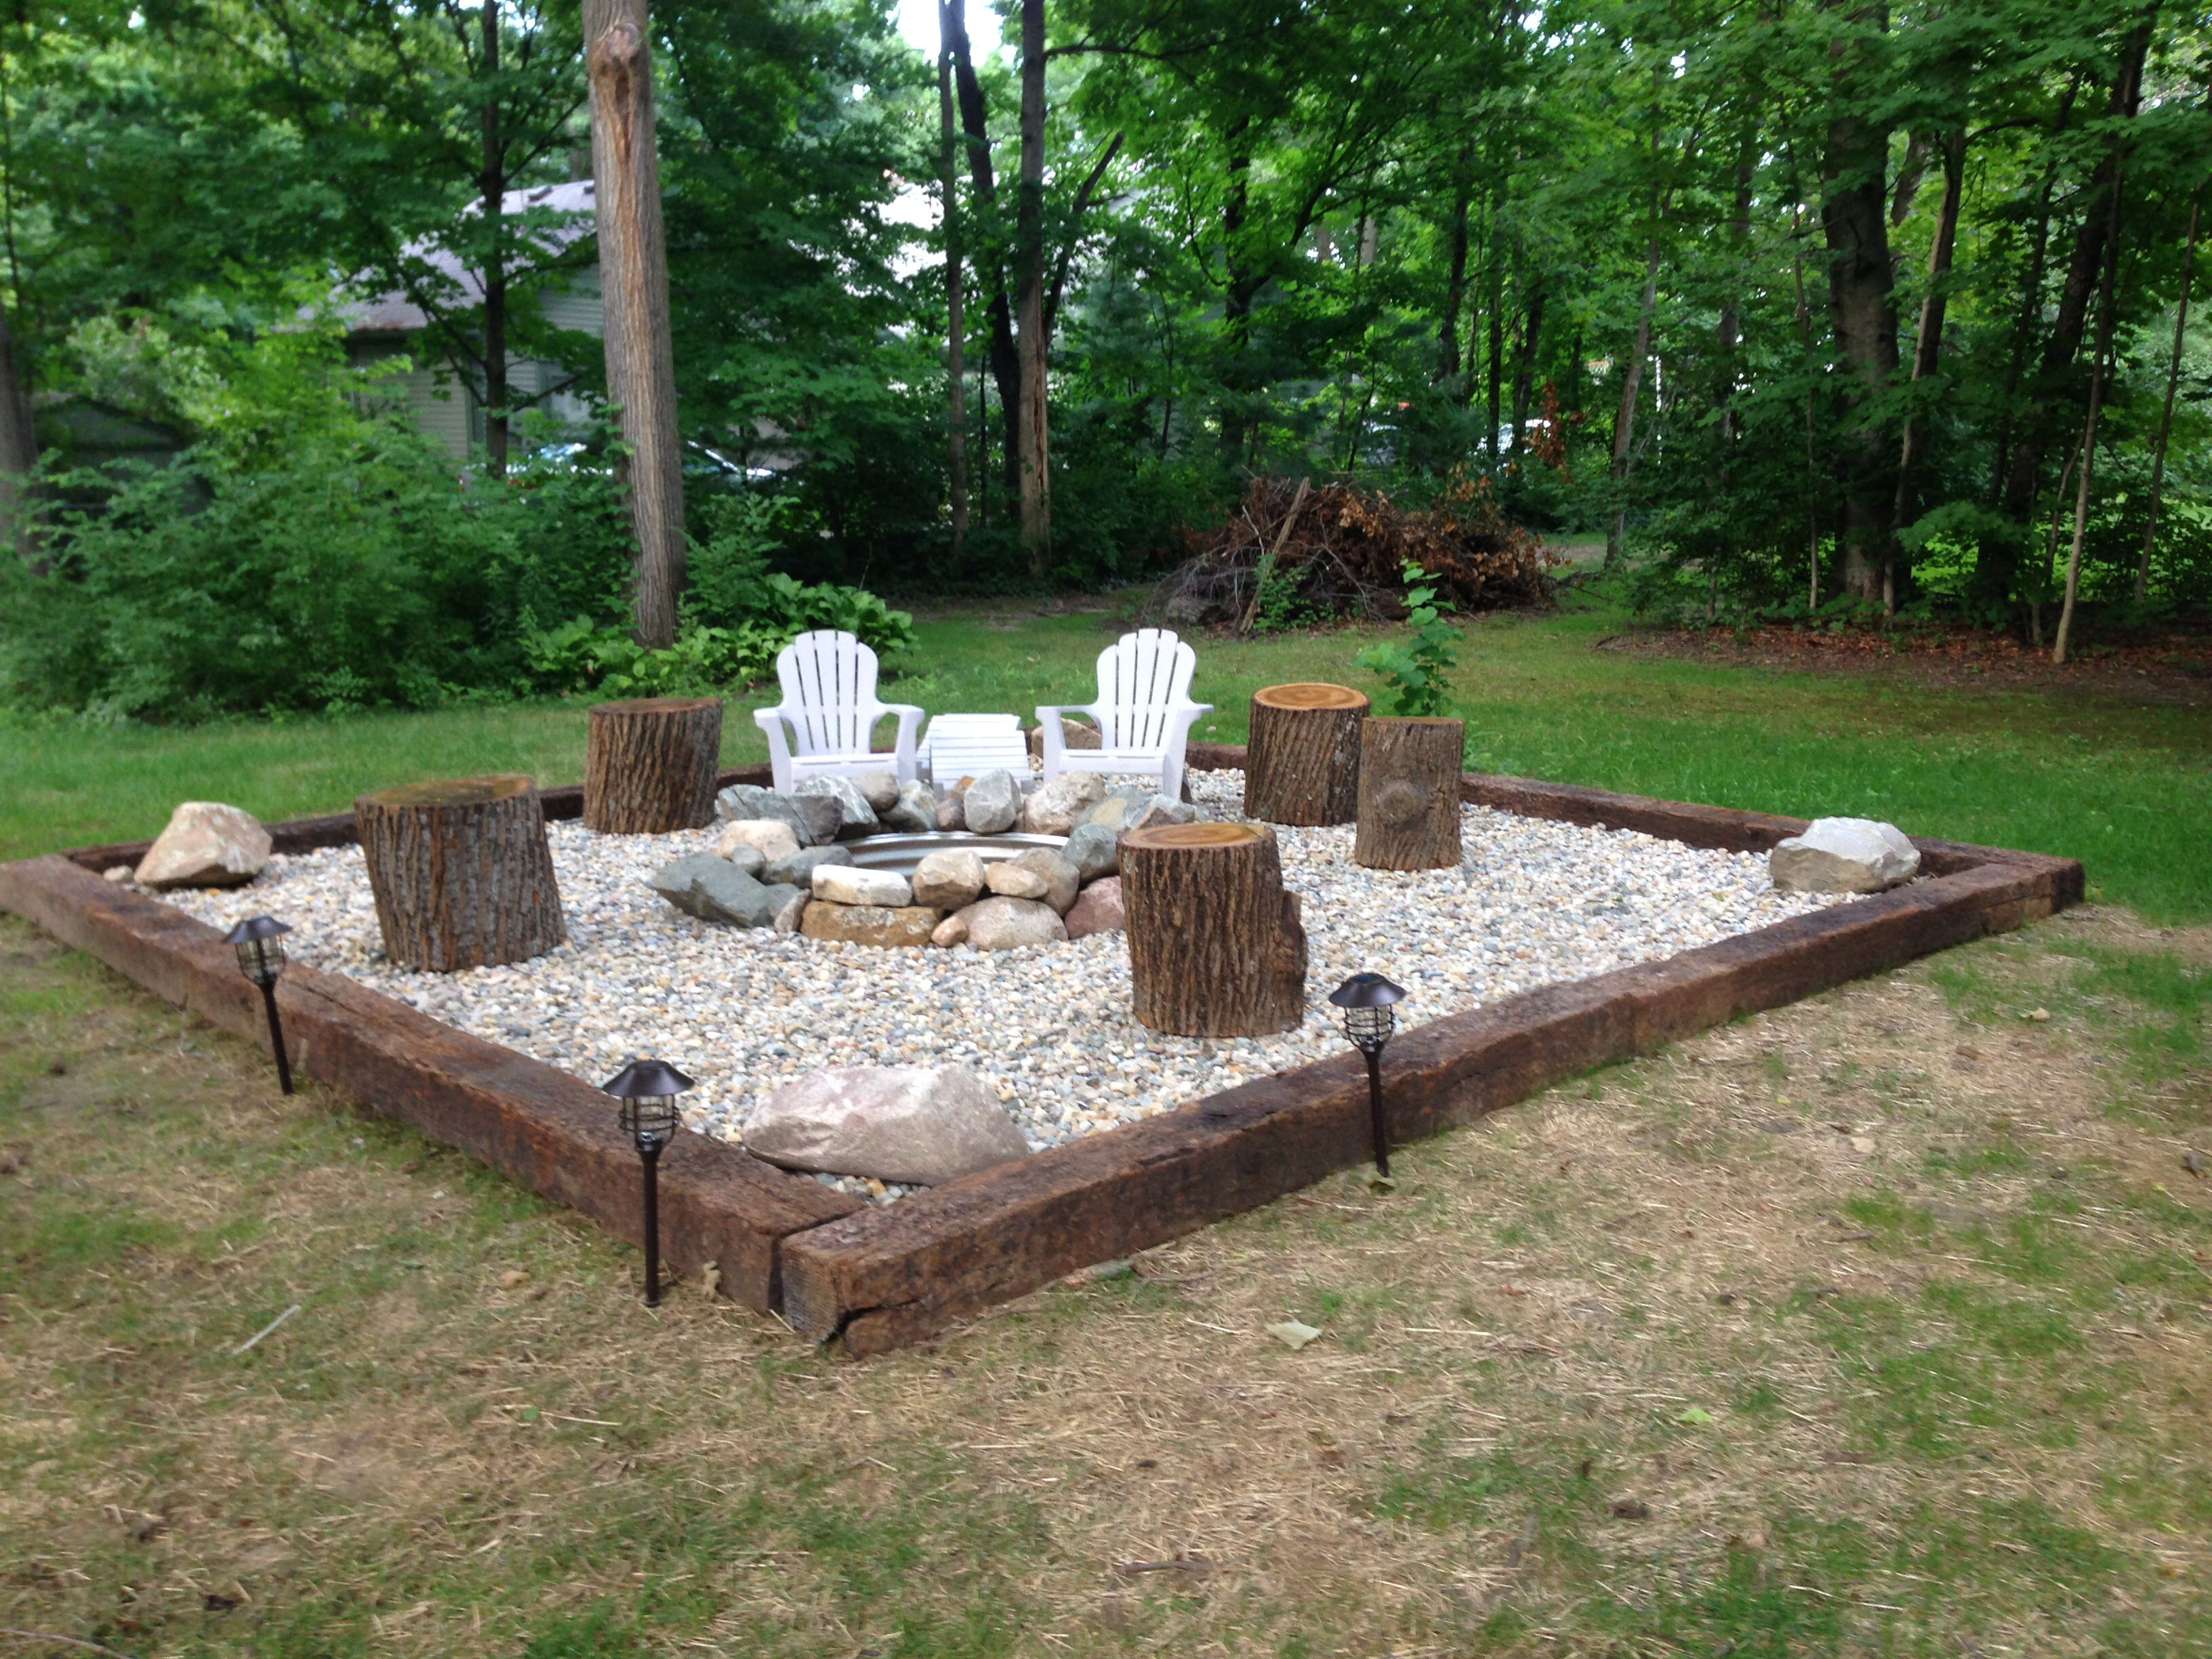 backyard pits services and fire minneapolis mn inc hardscapes landscape pit rings spear s spears